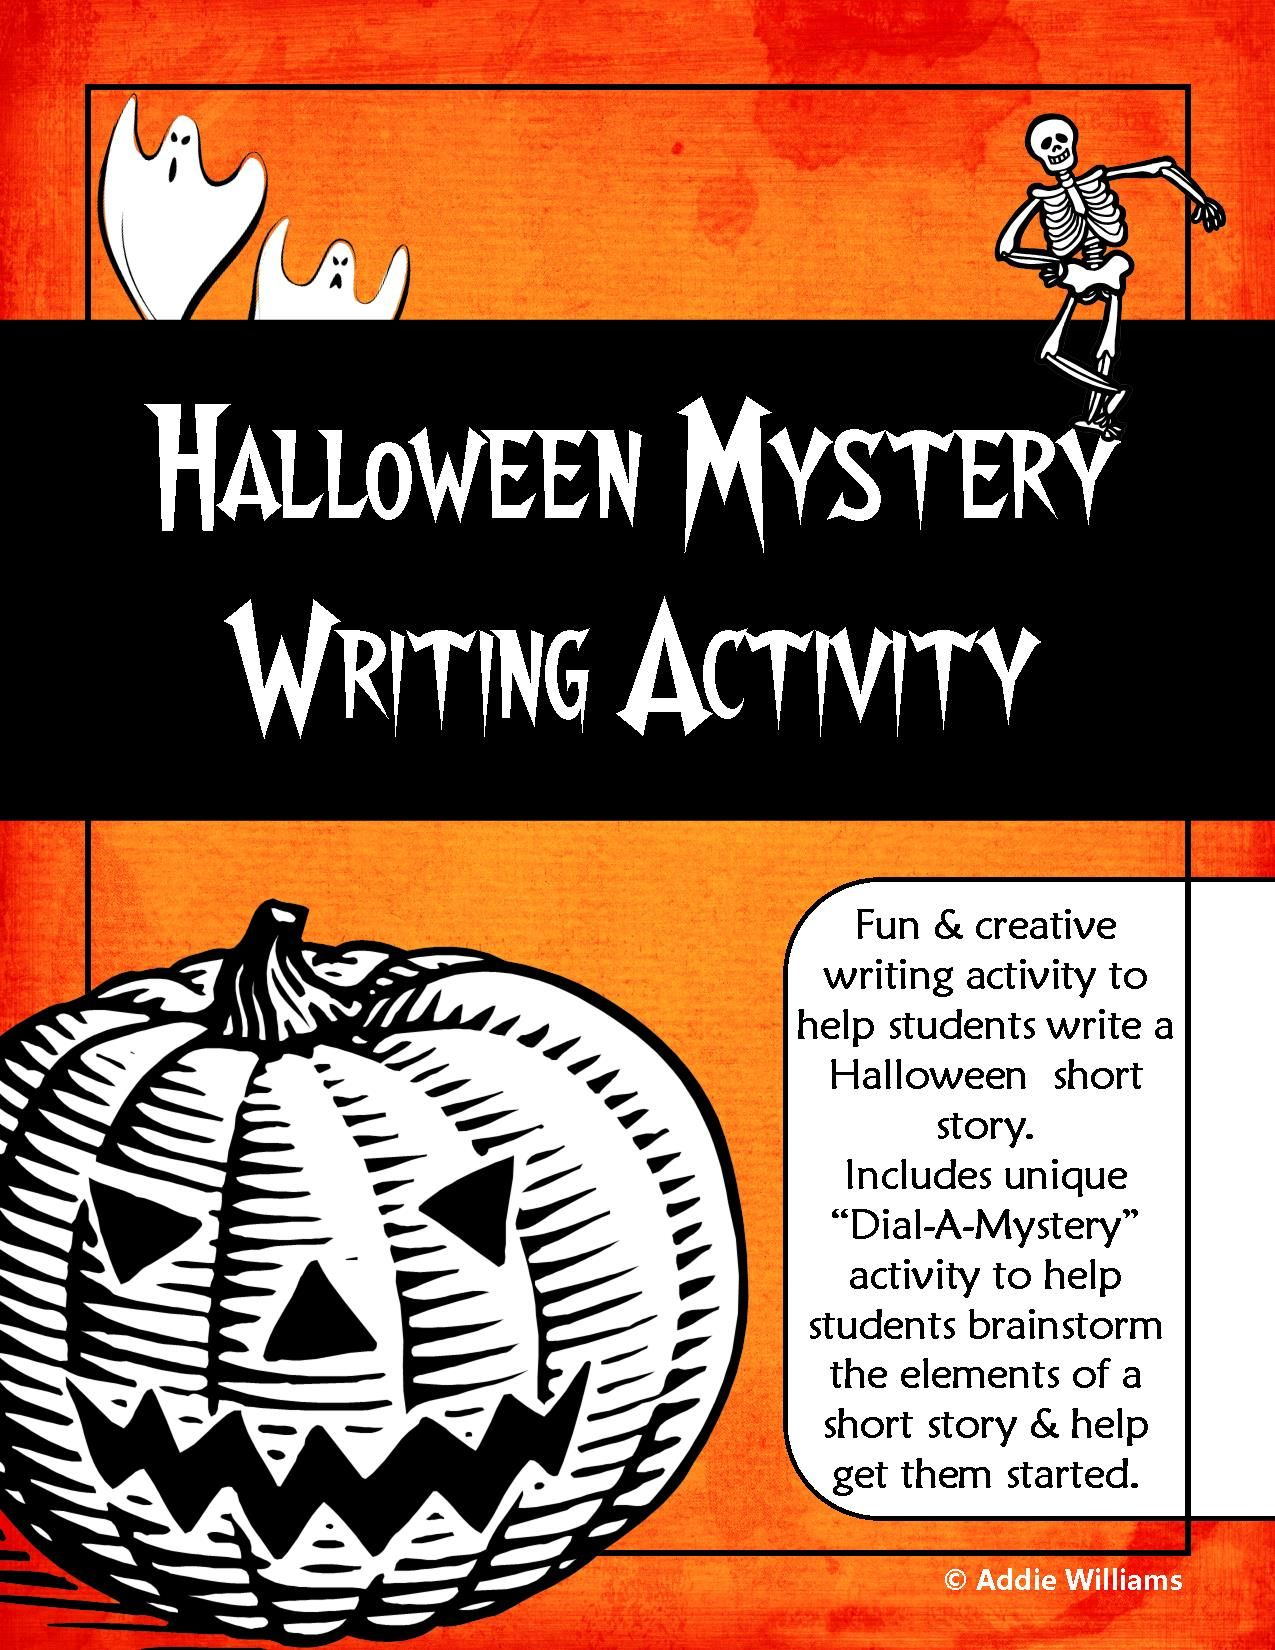 halloween writing activity create an engaging mystery story halloween writing activity one of my best sellers an eye catching and easy to use assignment for students to create an engaging halloween mystery story